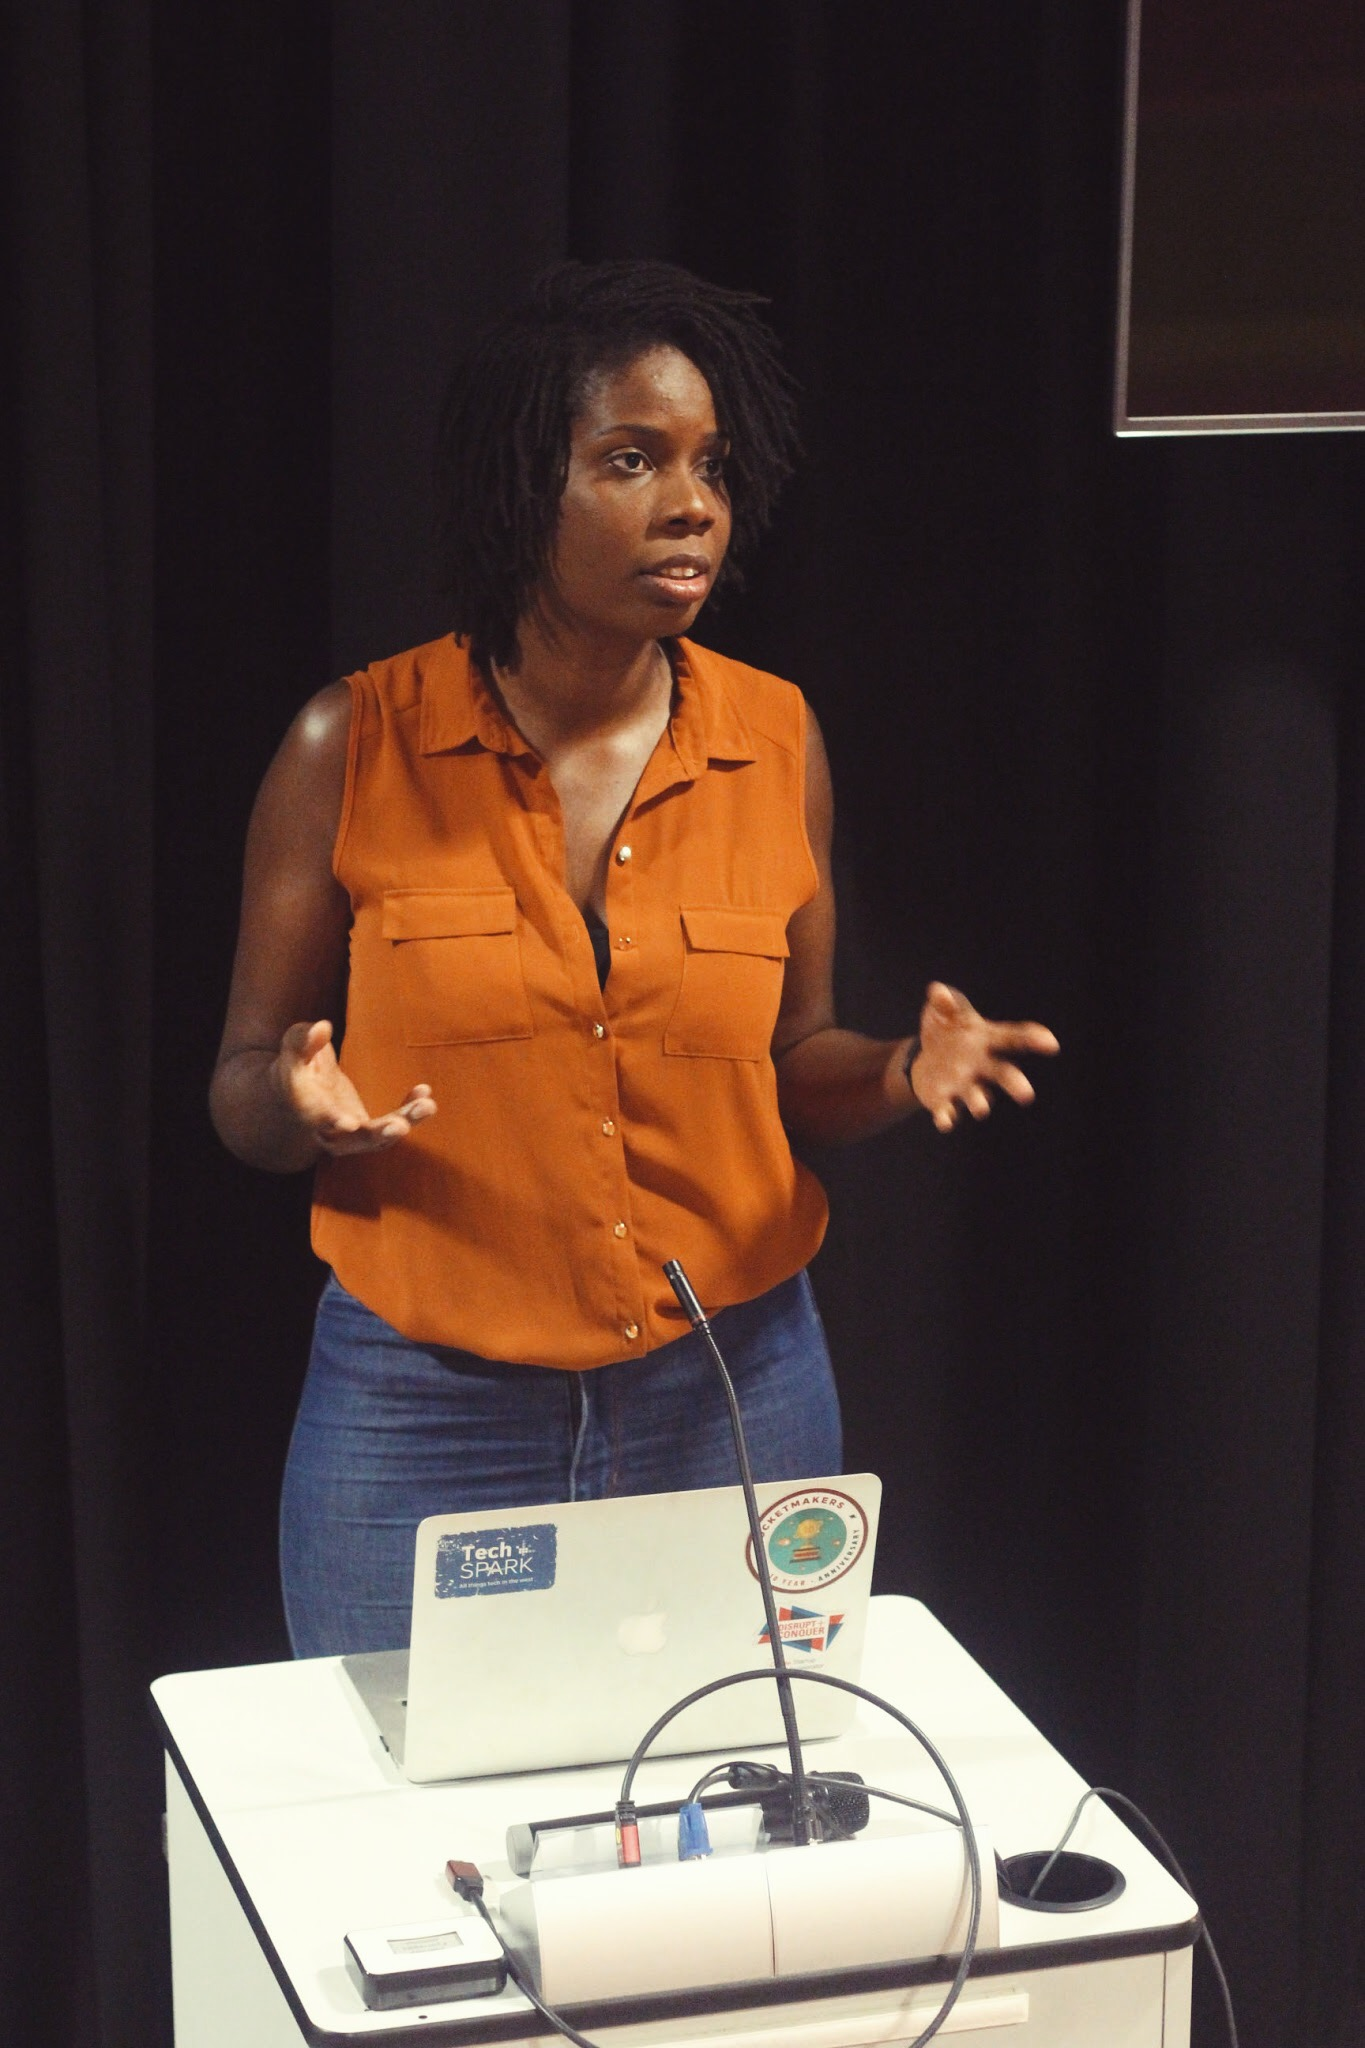 A black woman named Joyann Boyce standing at a podium giving a talk. She is behind a black back drop, she has a laptop in front of her and a microphone. She's wearing an orange top and blue jeans.